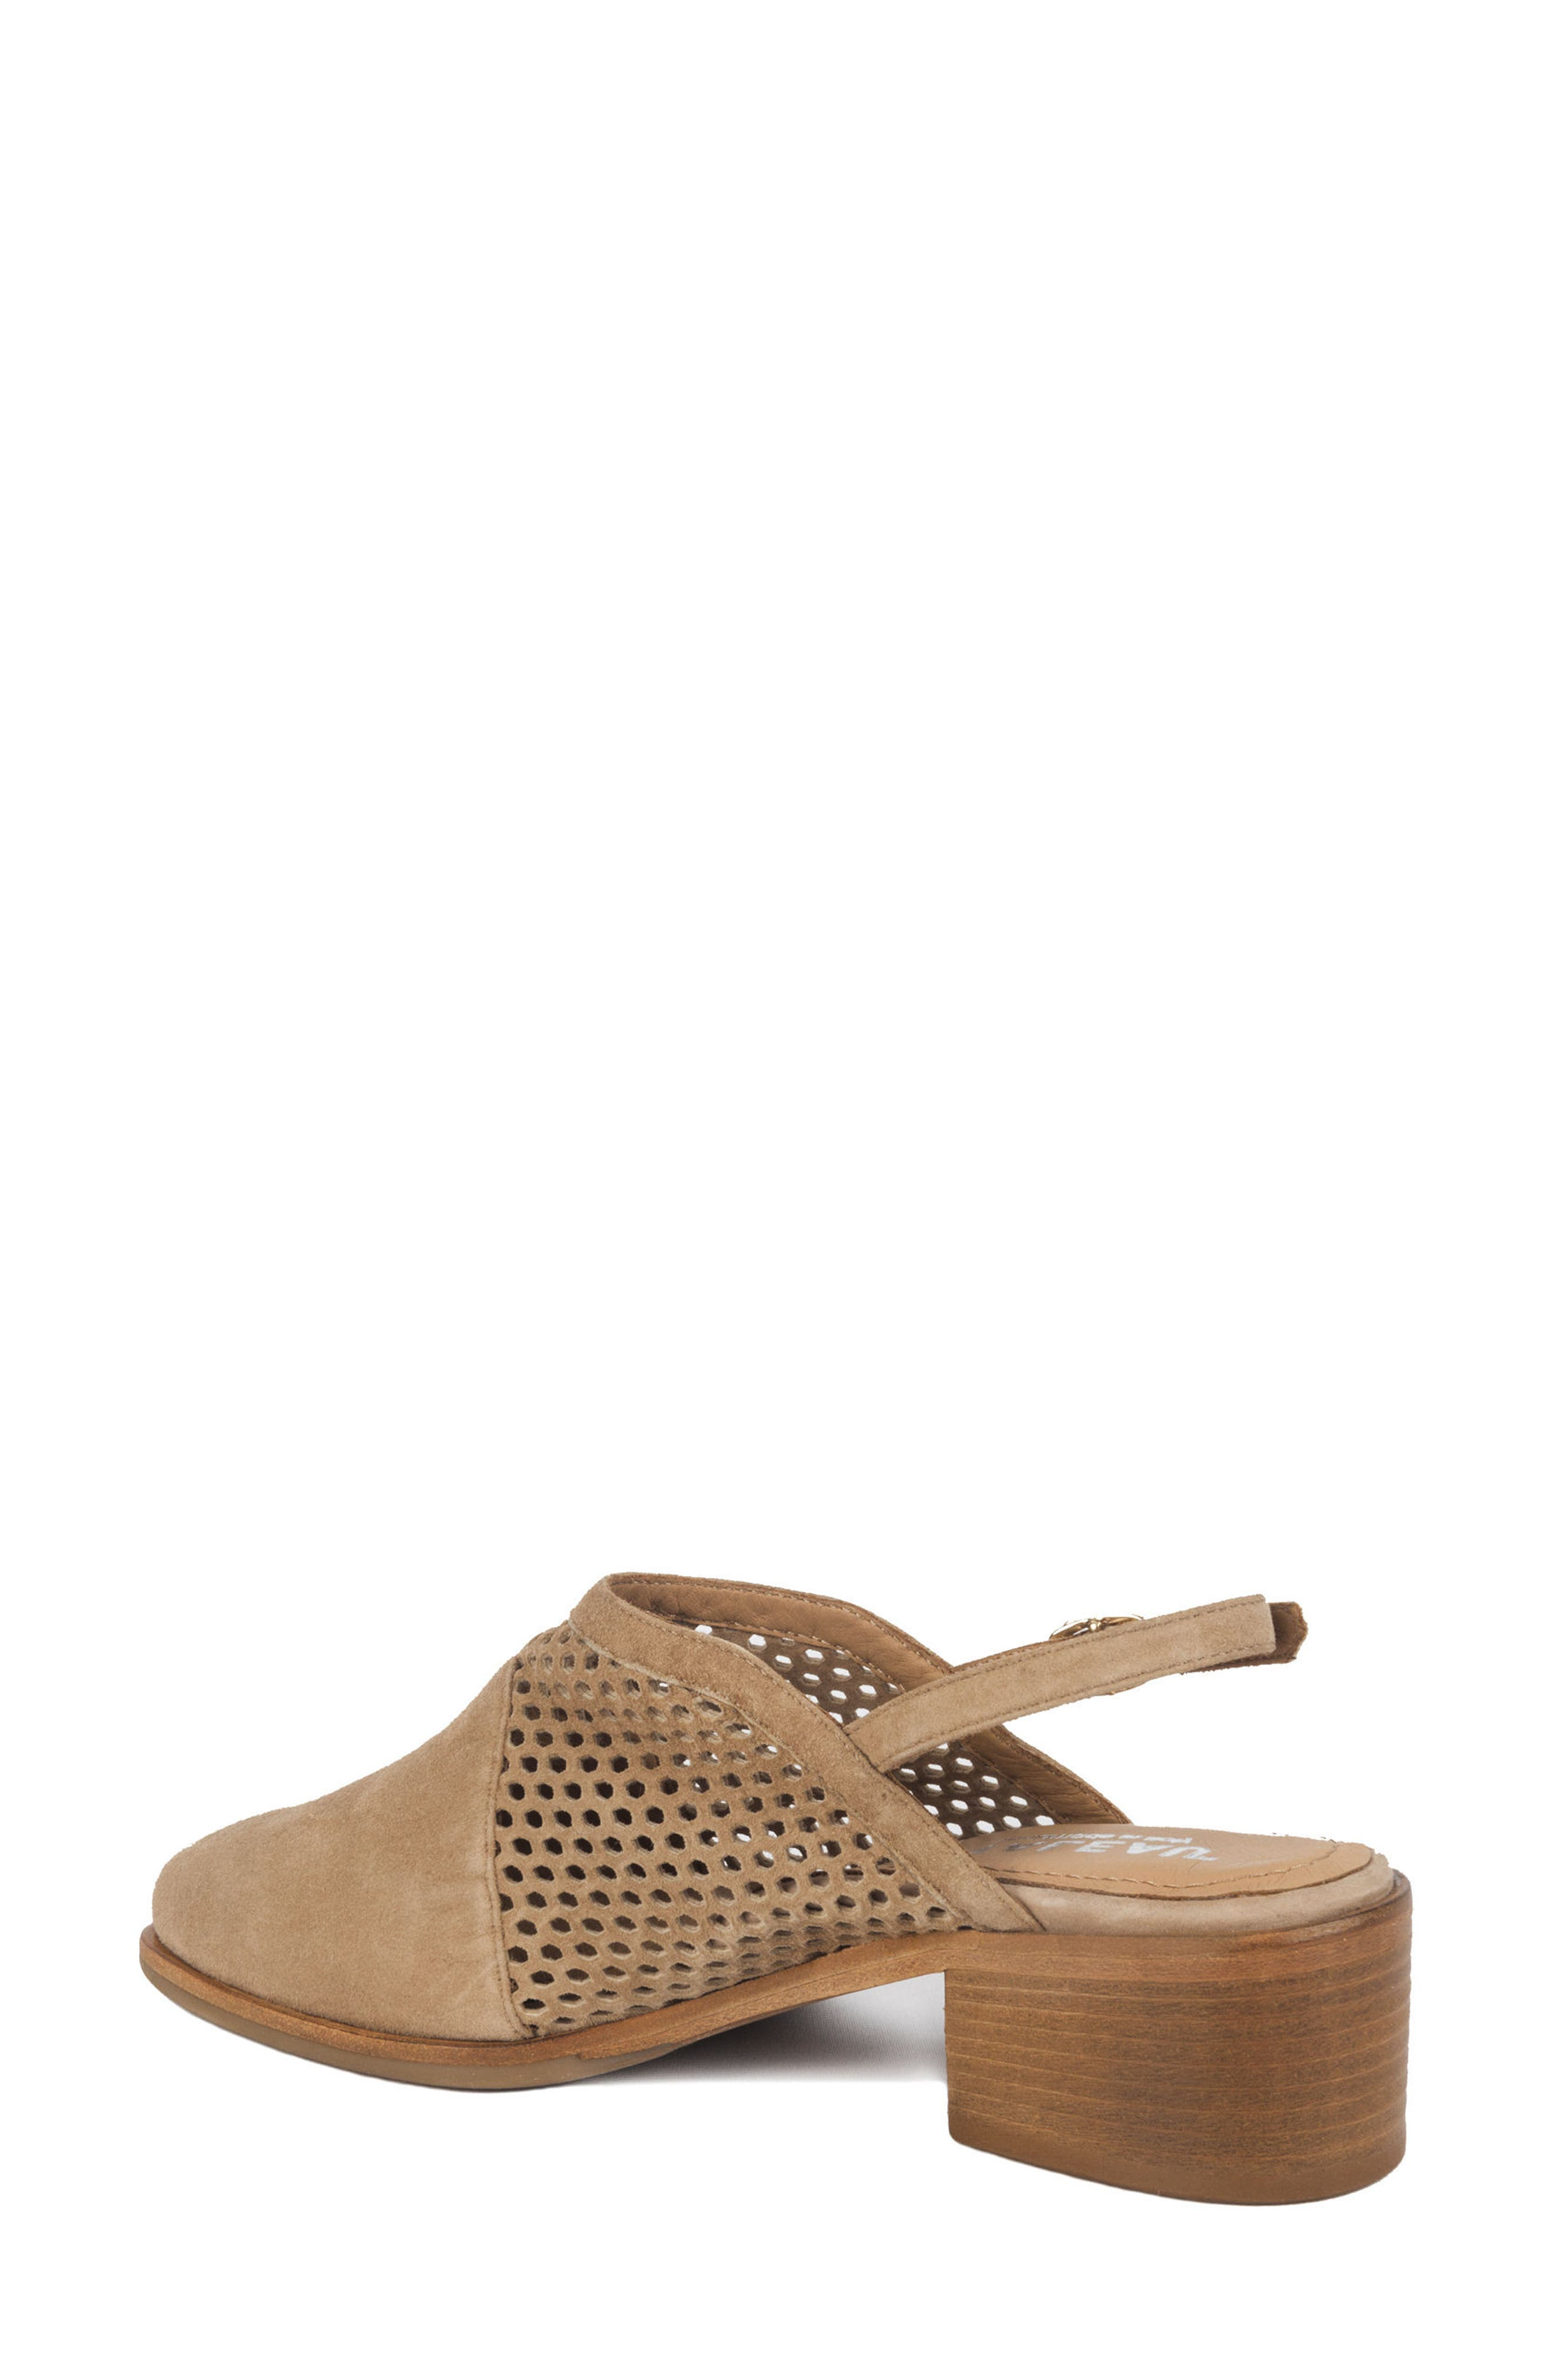 Toselli Water Resistant Slingback Bootie,                             Alternate thumbnail 2, color,                             Sand